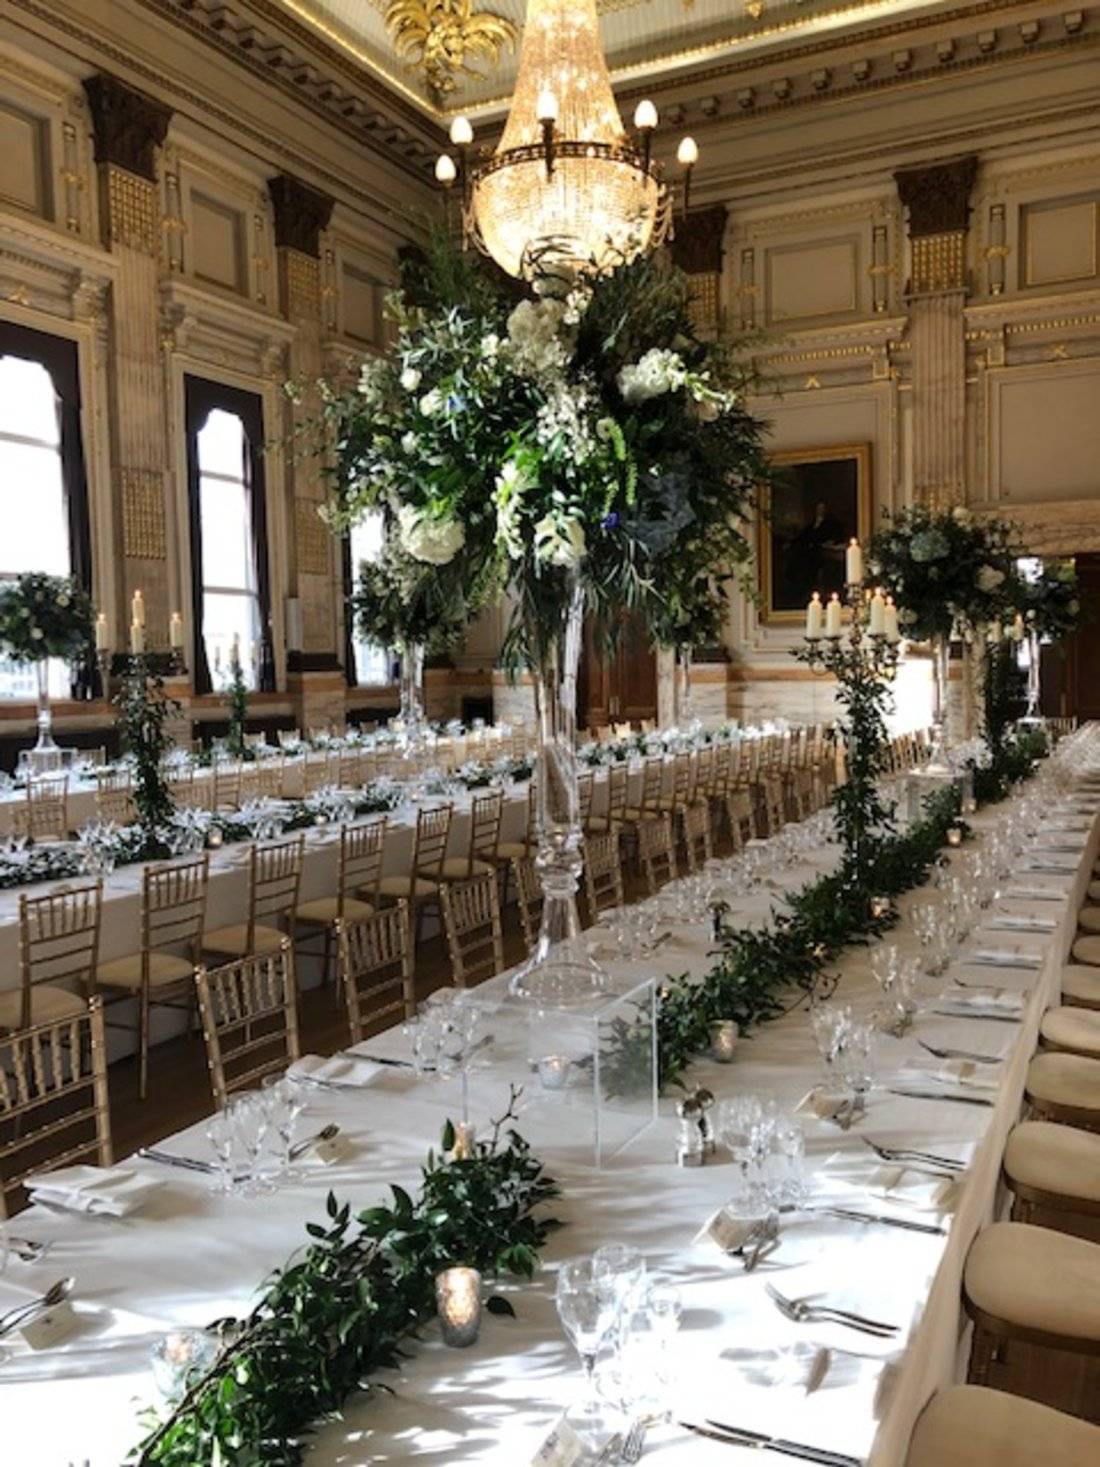 banquet-style-white-green-wedding-OGGS-venue